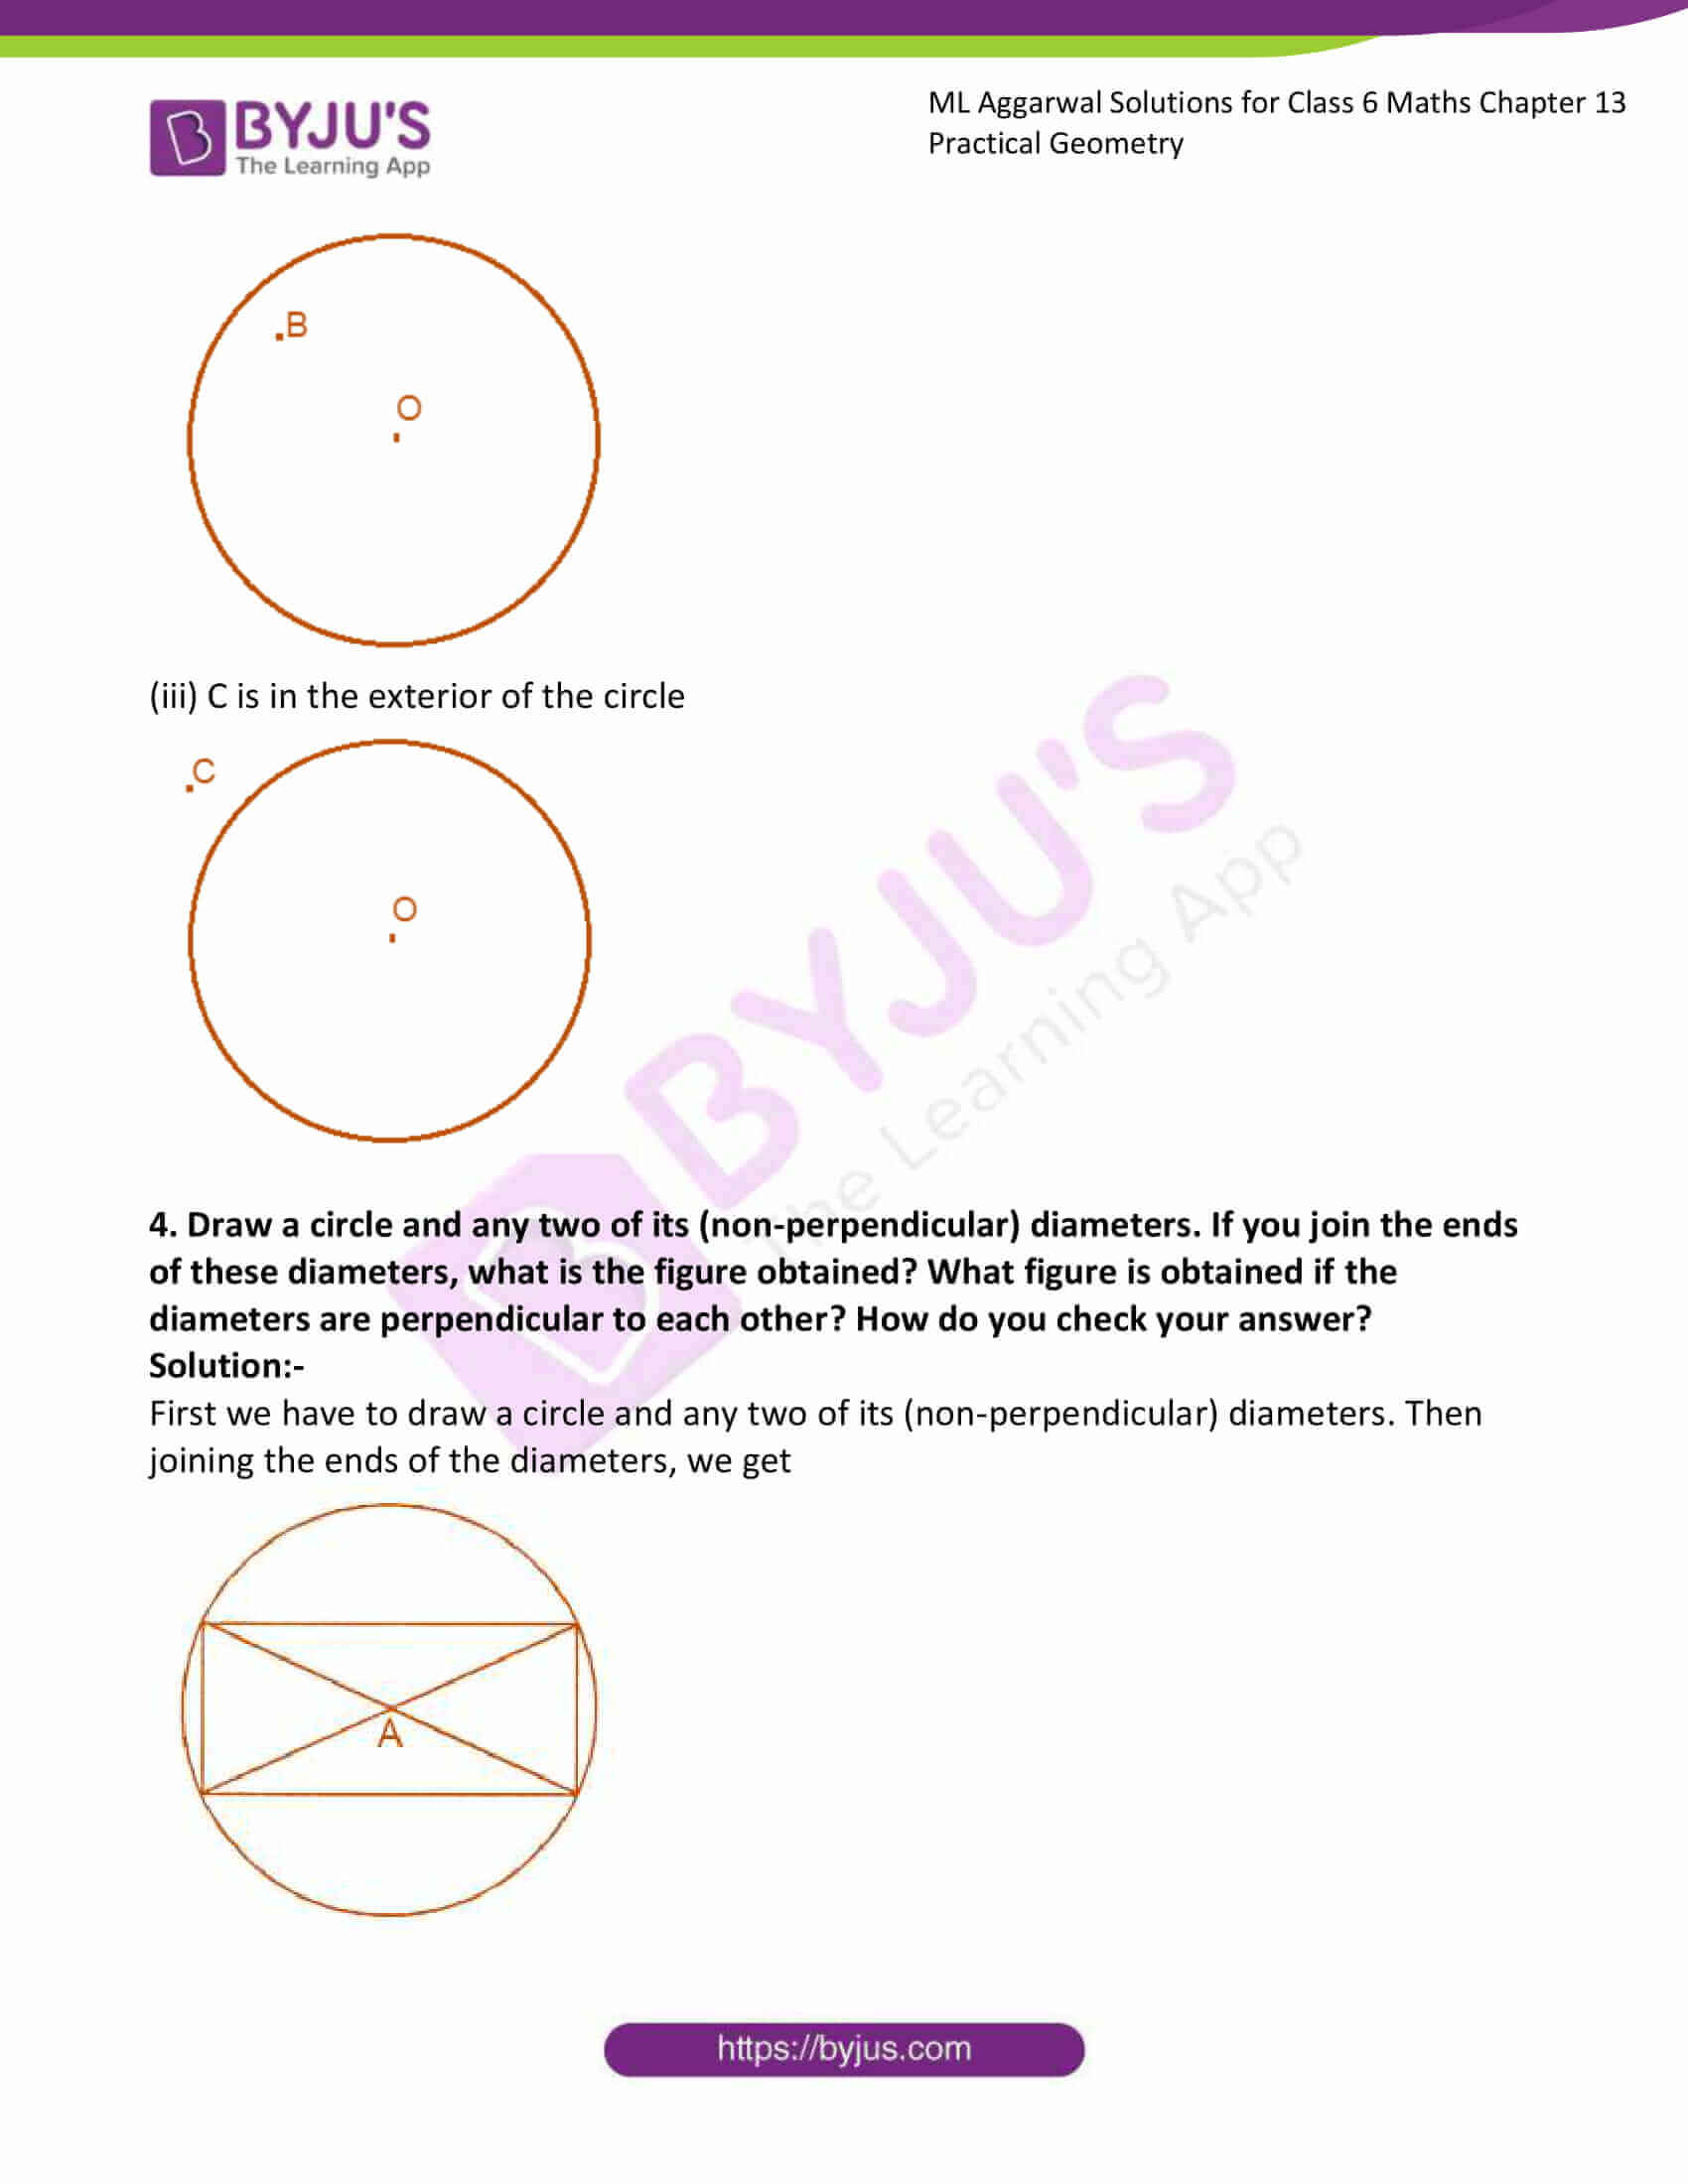 ml aggarwal solutions for class 6 maths chapter 13 4